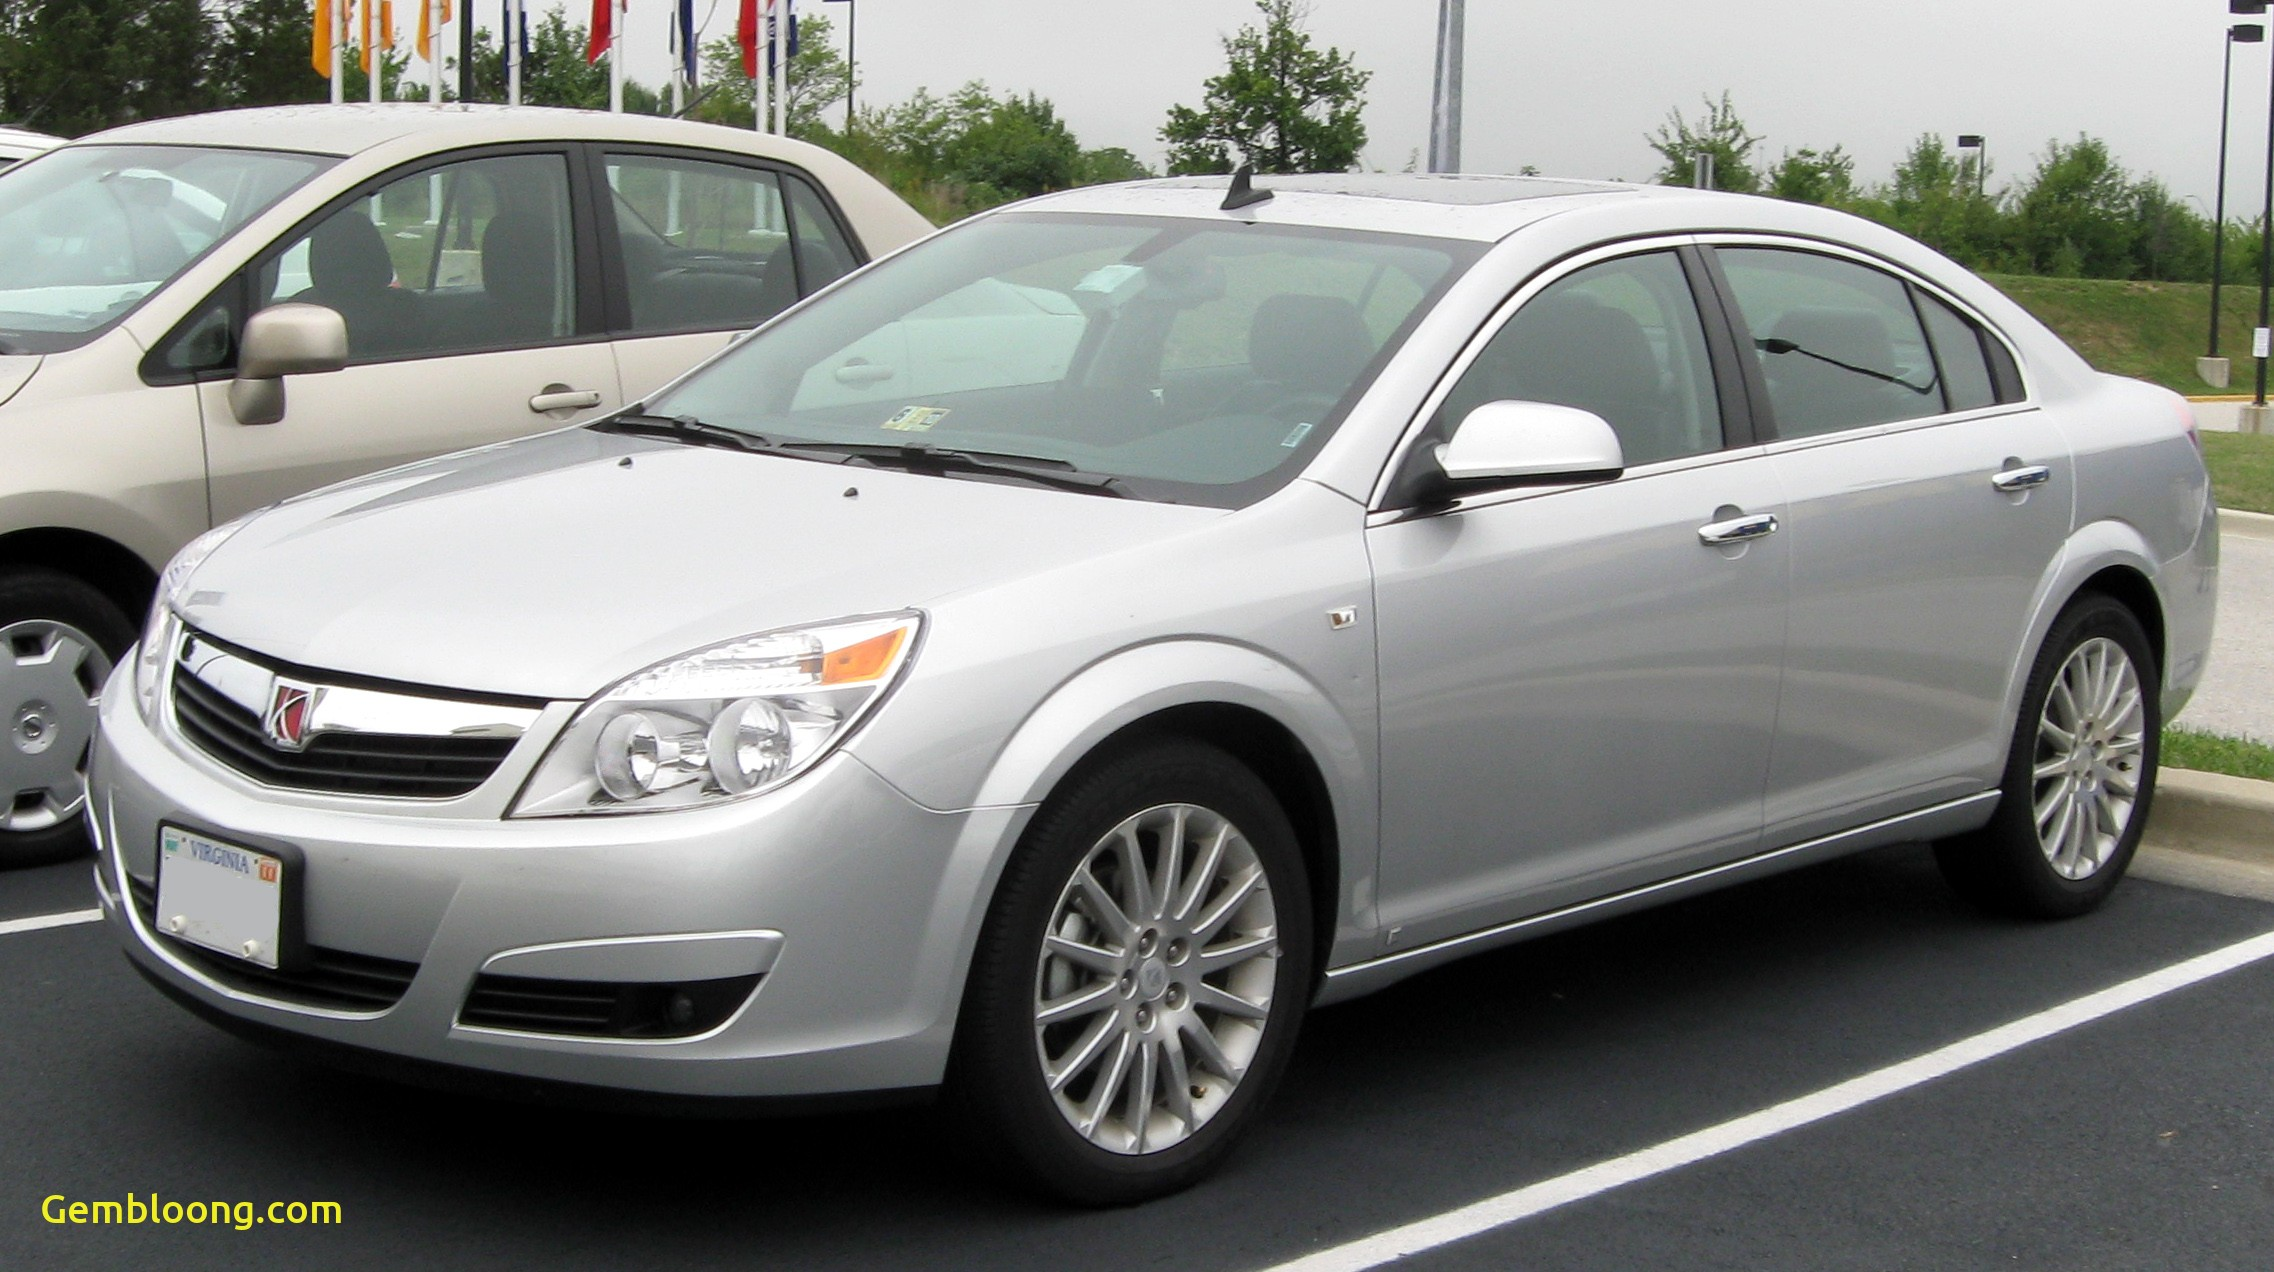 Saturn Aura XR 08 28 2009